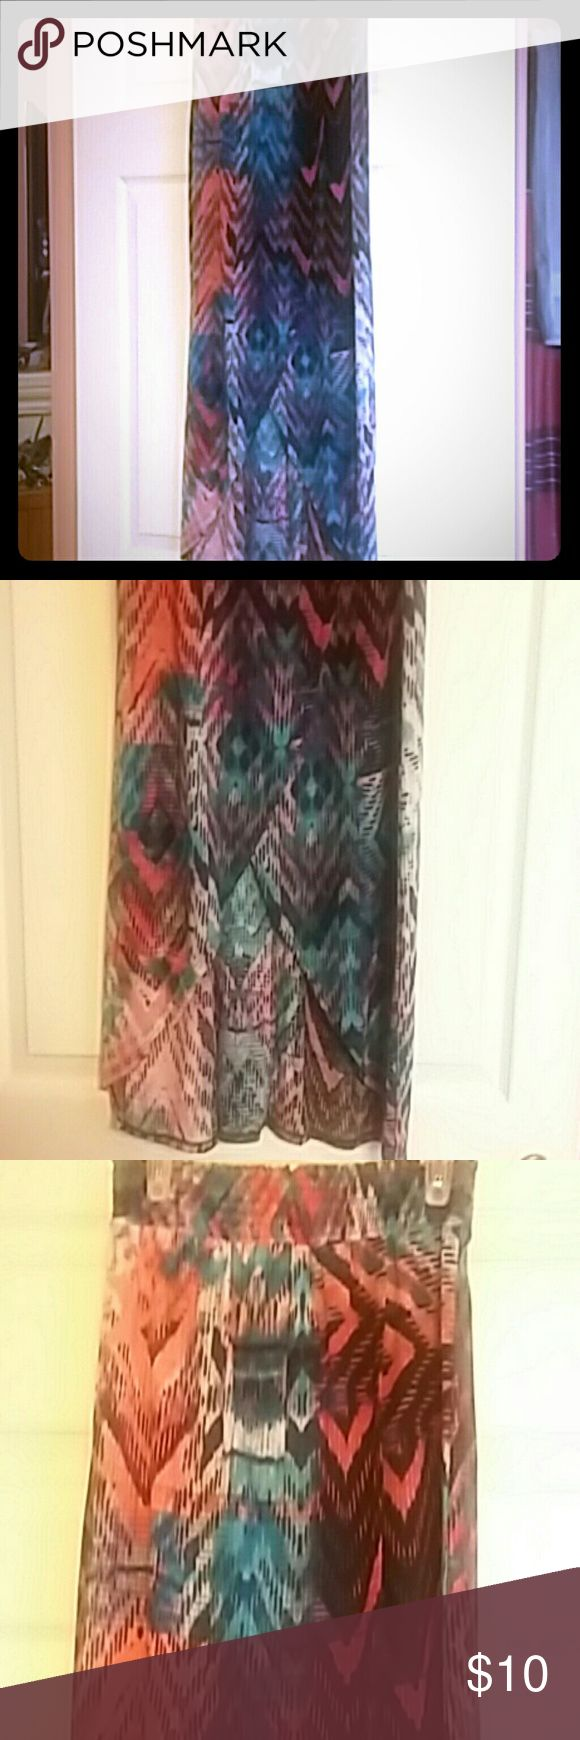 Cotton long skirt Skirt long brand new never worn, great over swimsuit or just for vacation very confy. Colors are fuchsia,  salmon  and black No Boundaries Skirts Pencil